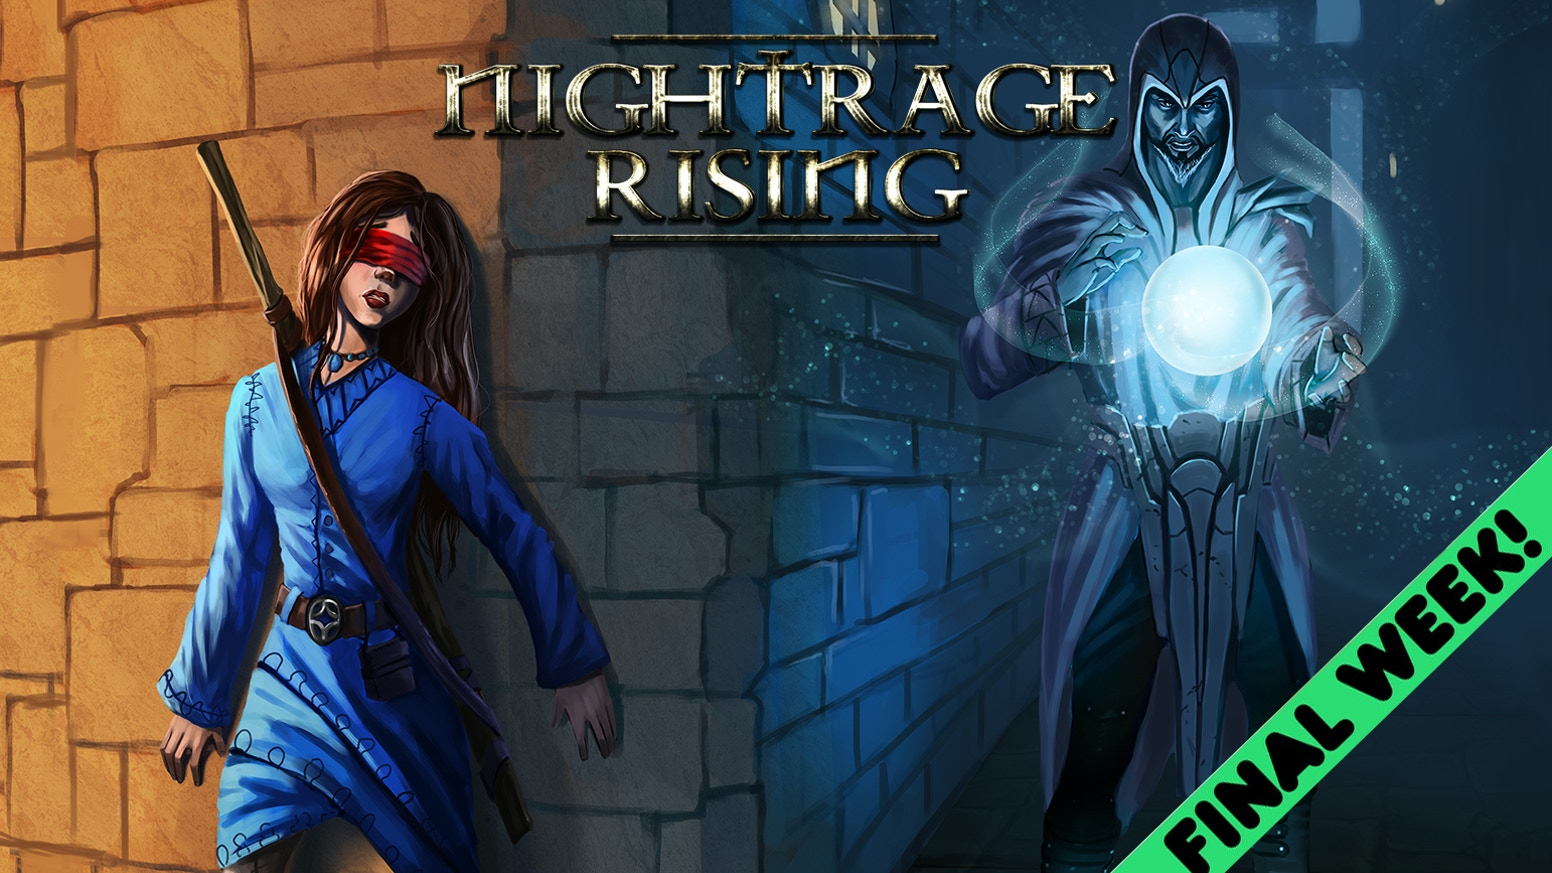 Nightrage Rising is the fantastical mystery-adventure of a young blind girl's struggle to escape a deadly anarchist cult